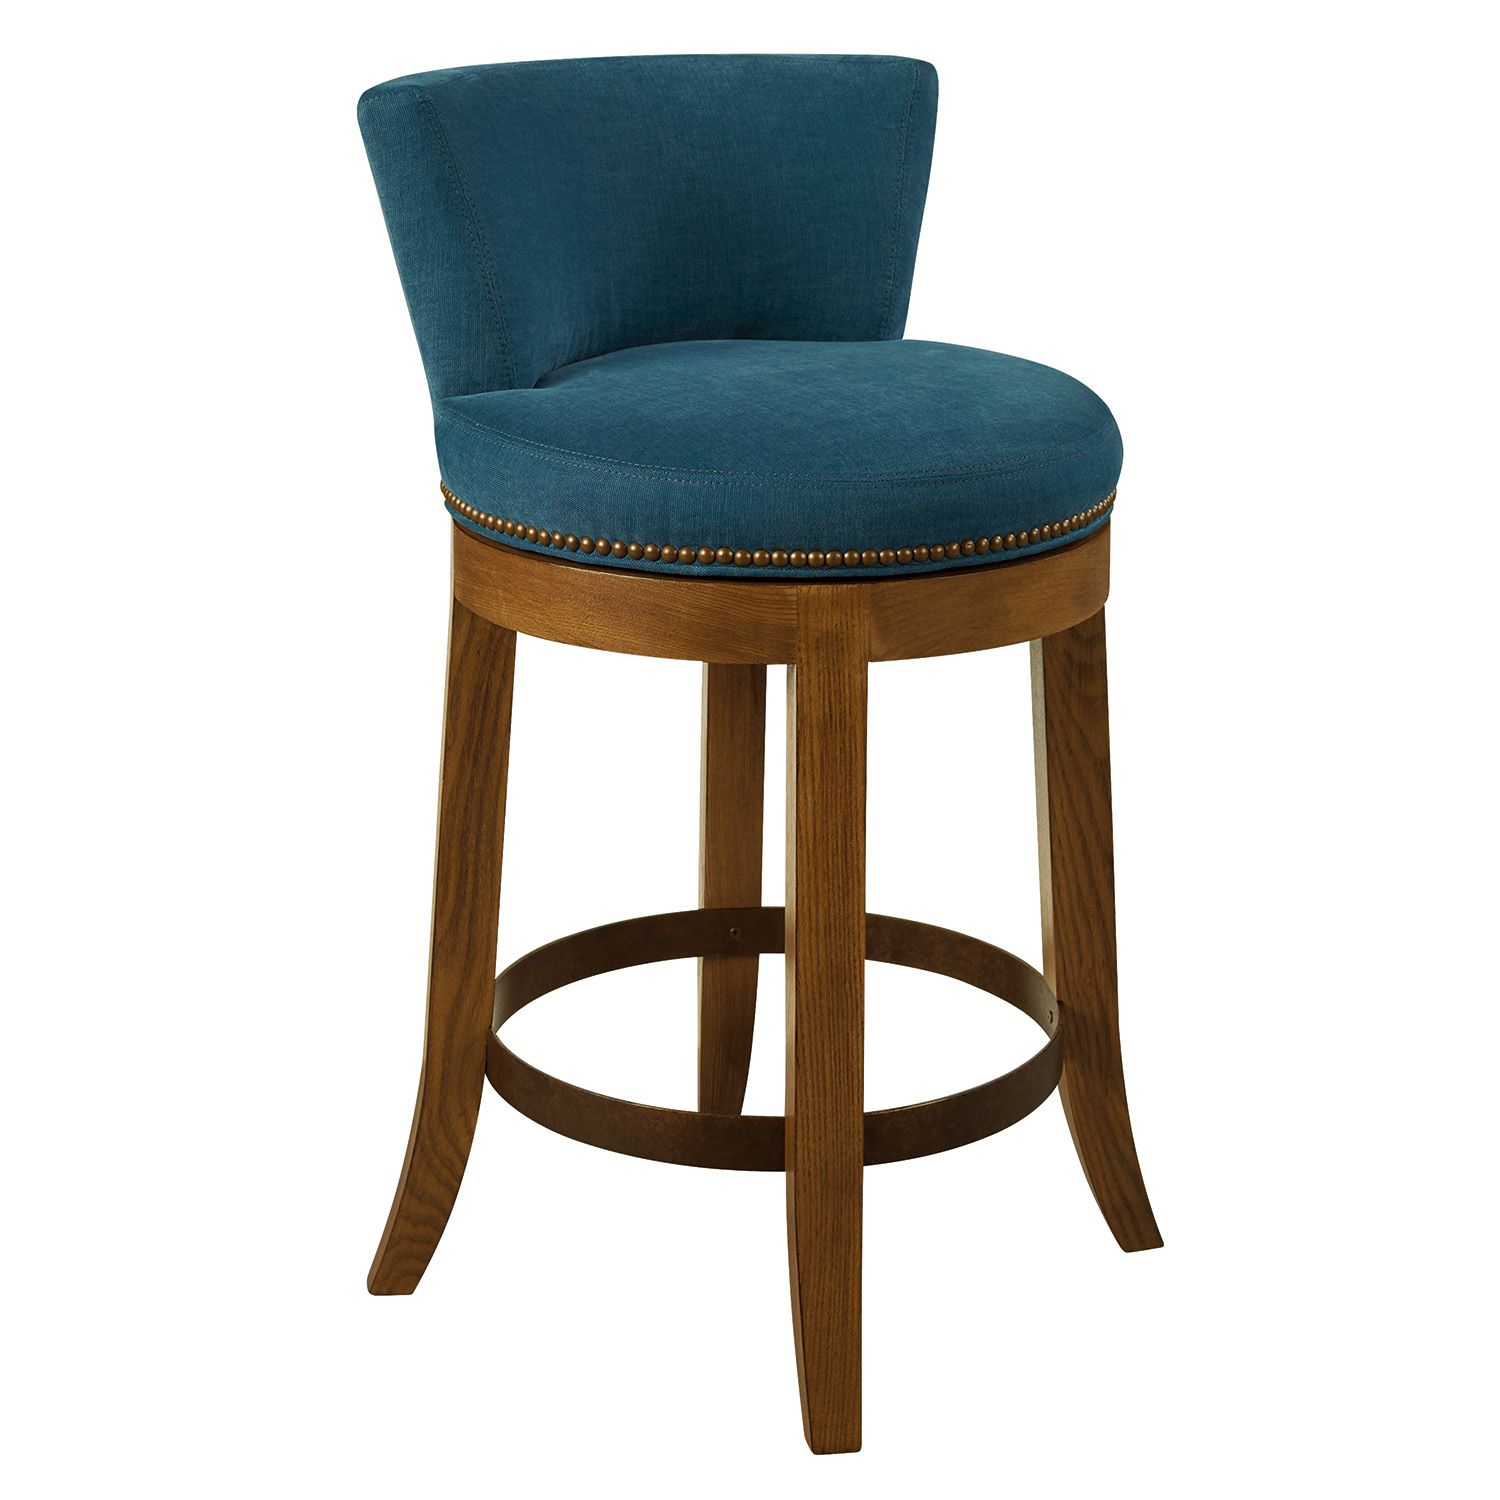 bar stools everything you need to know about bar stools upholstered